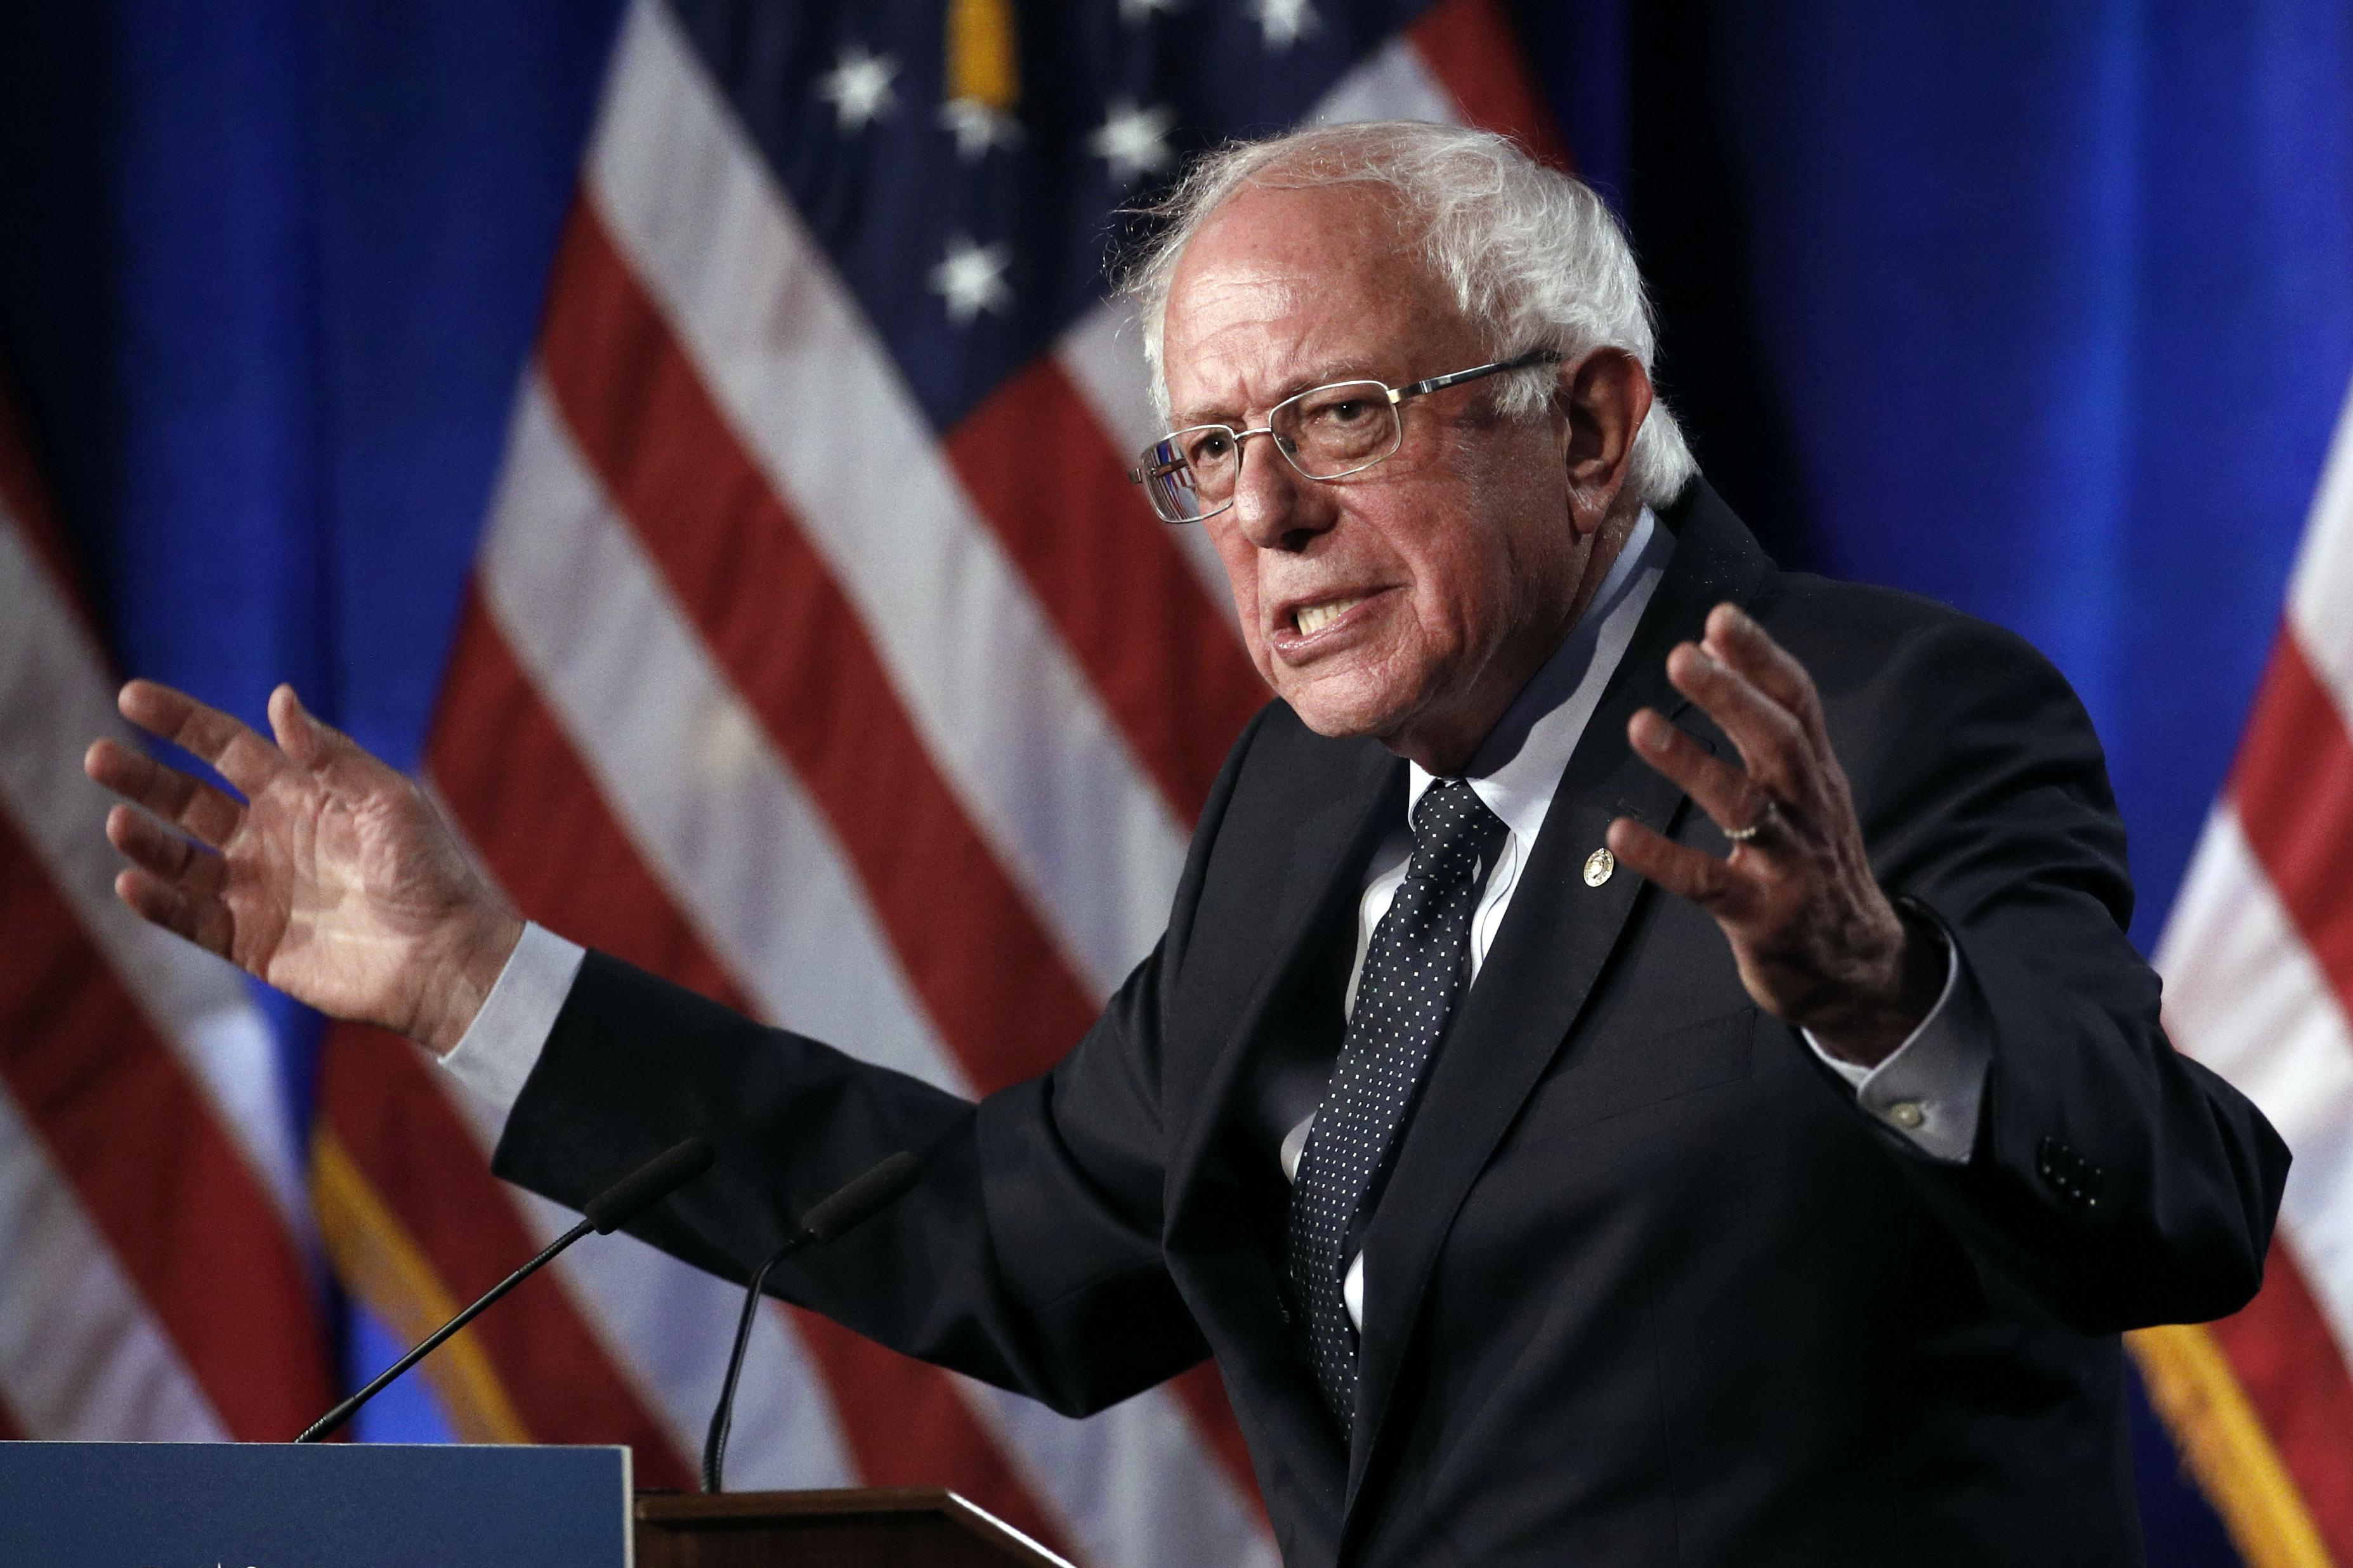 As goes Bernie Sanders, so go the Democrats, toward nomination or deadlock